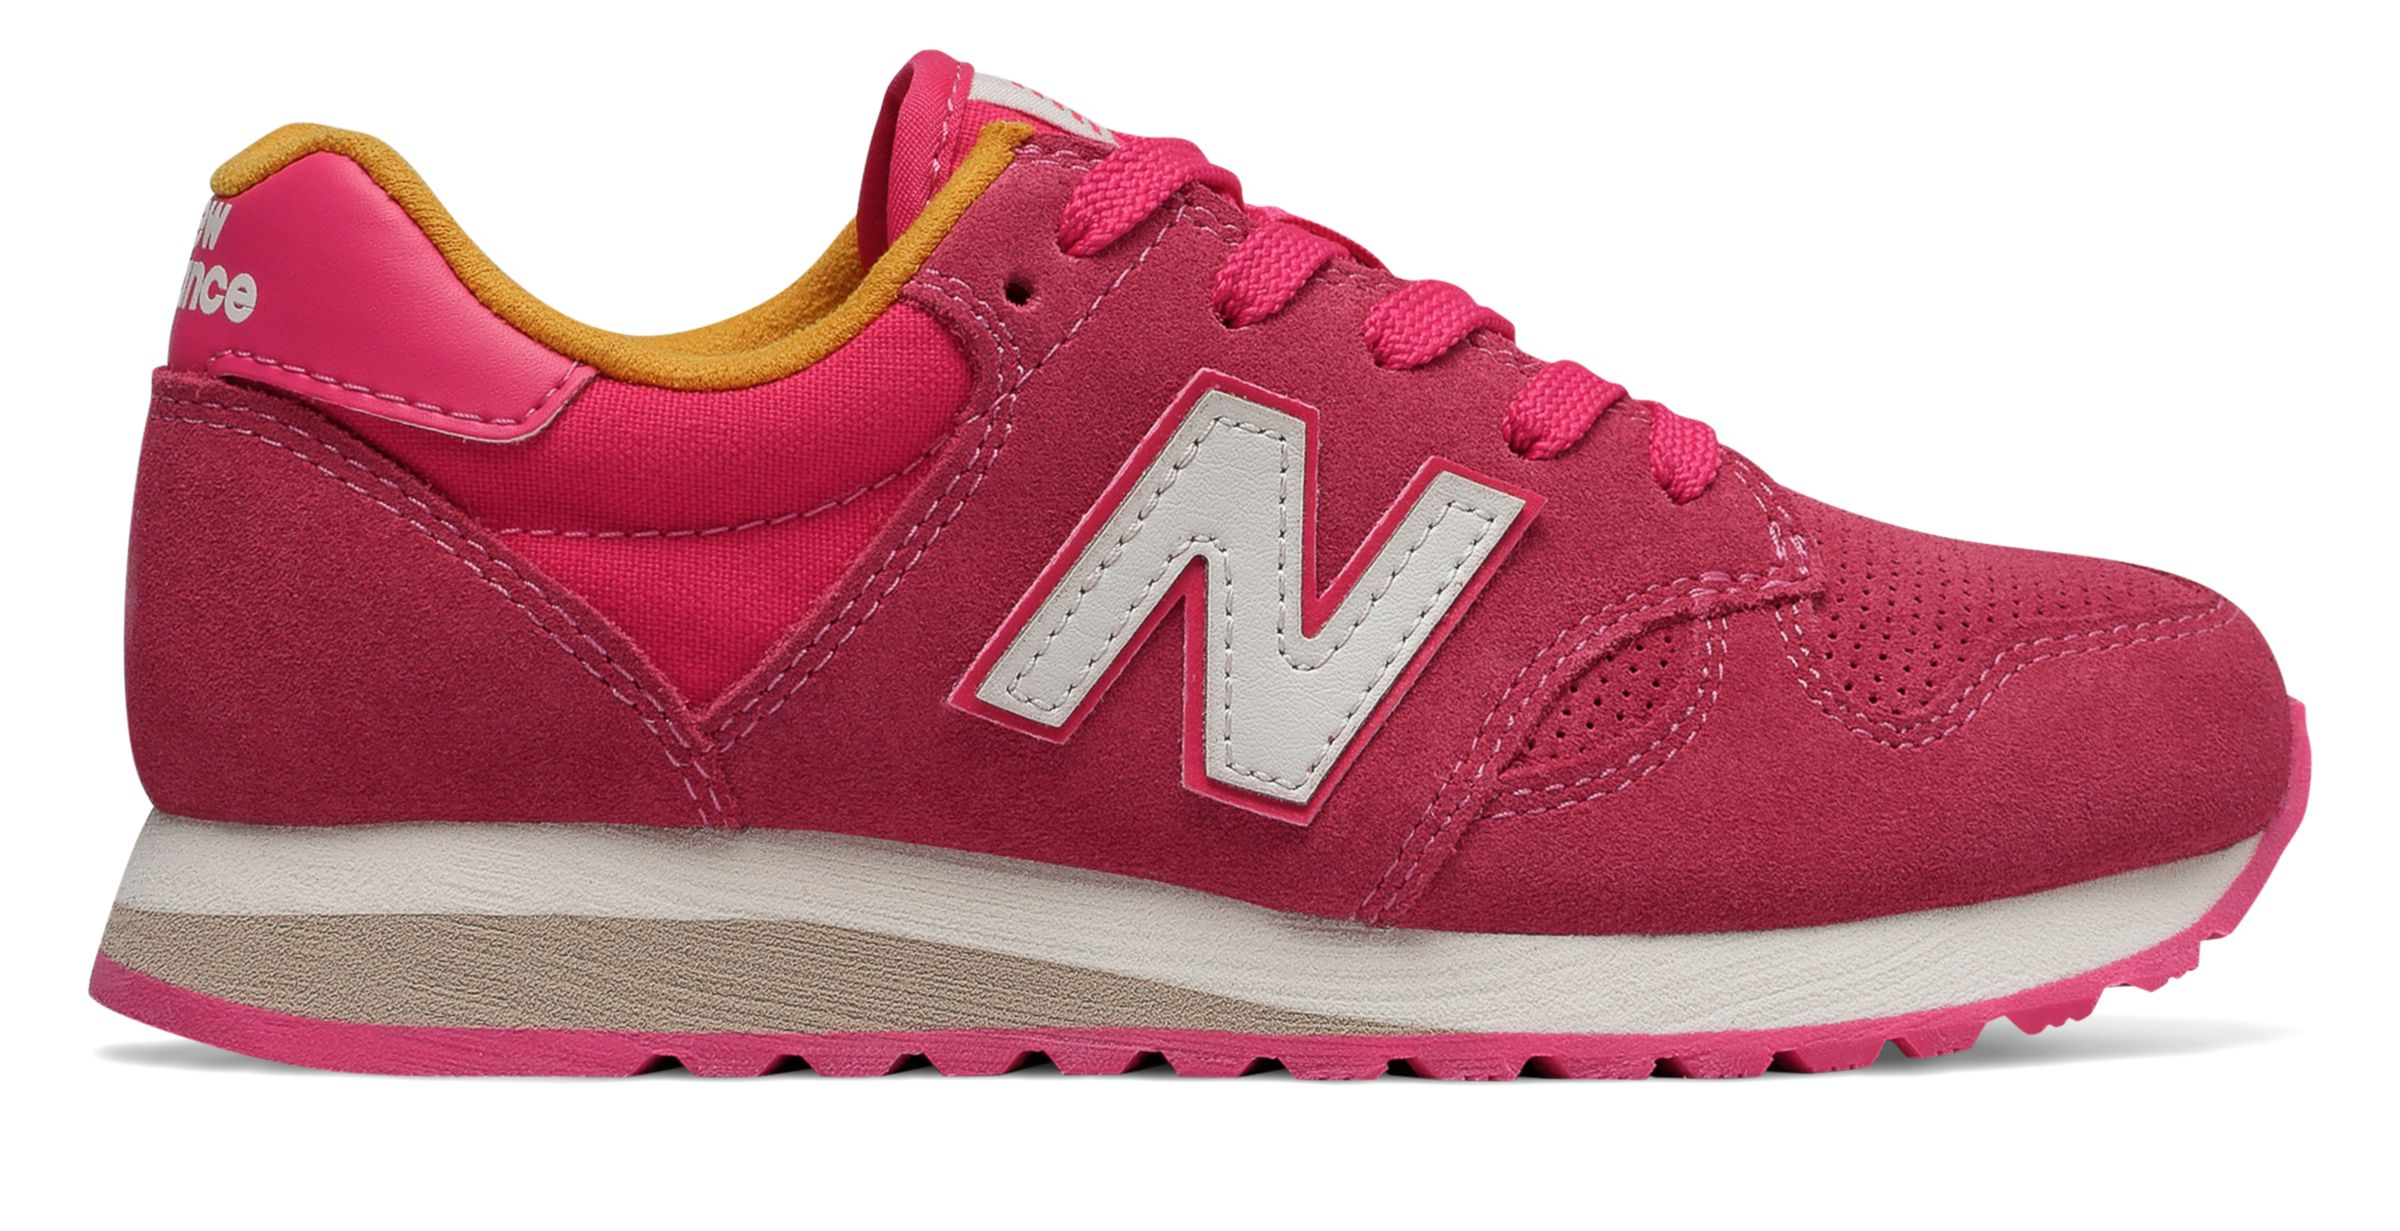 767ce55d3c New Balance Kid's 520 Big Kids Female Shoes Pink with Yellow | eBay